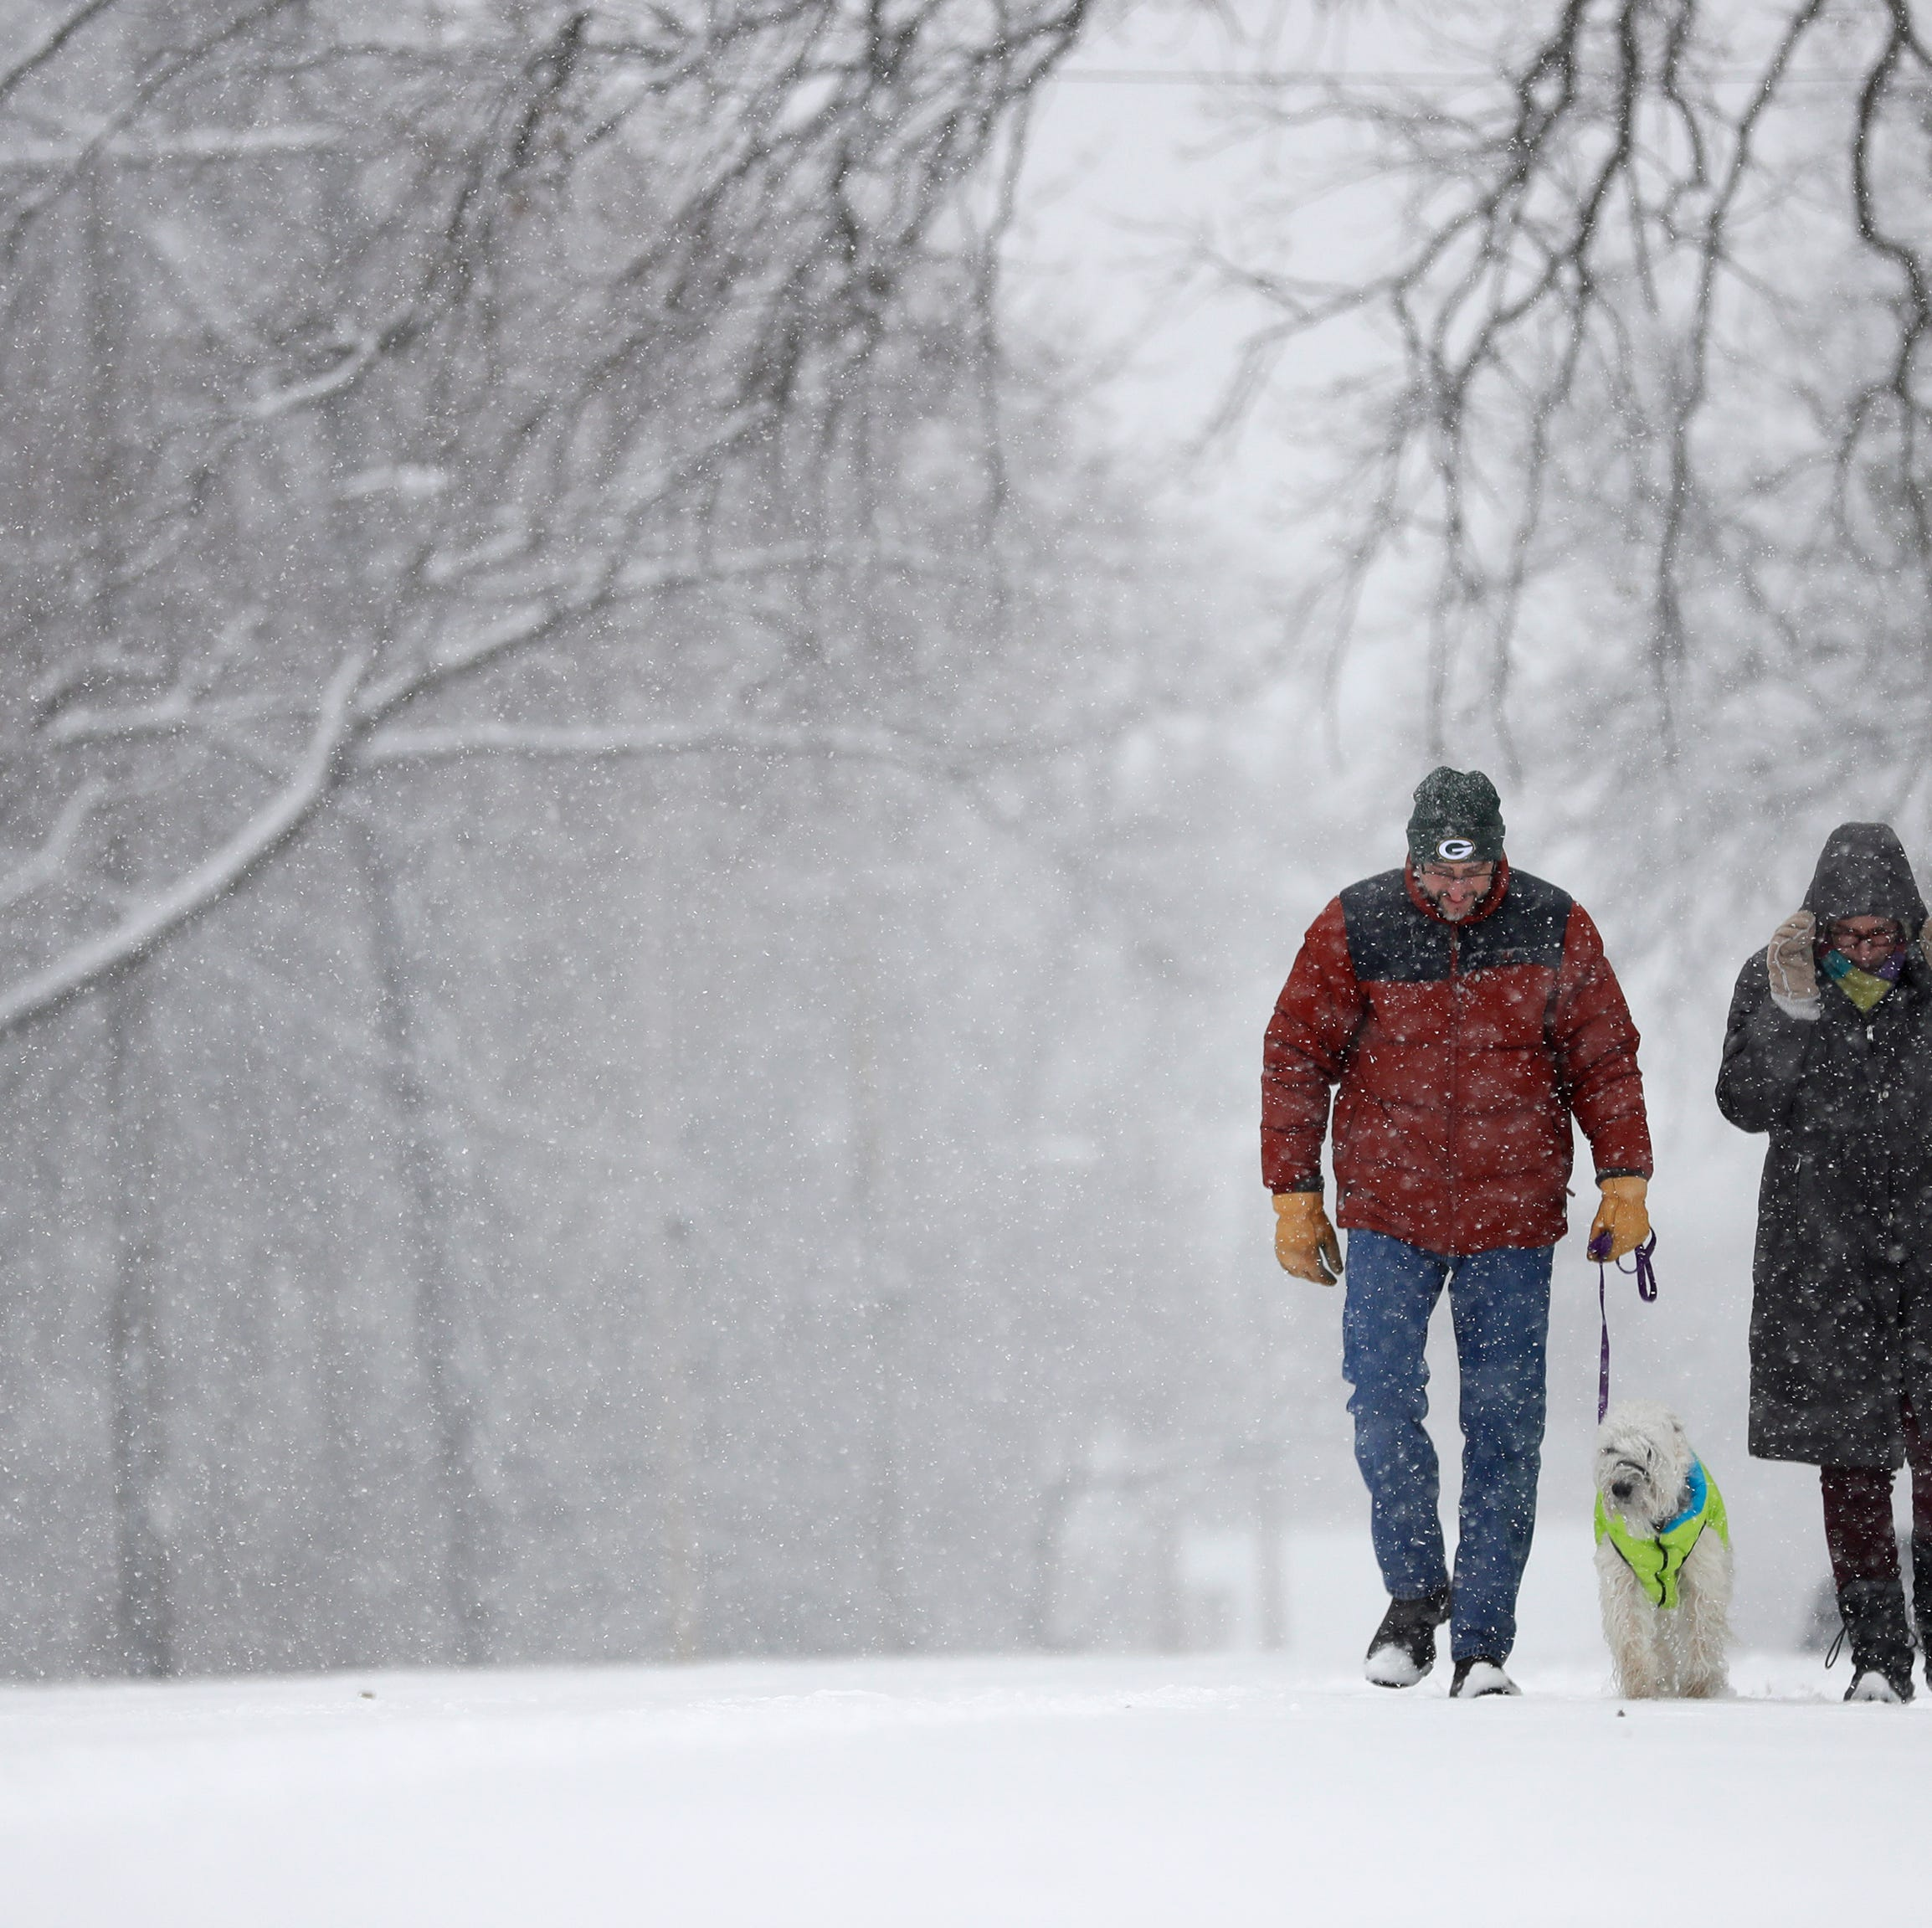 Snowstorm could drop up to 10 inches of snow in some parts of Wisconsin